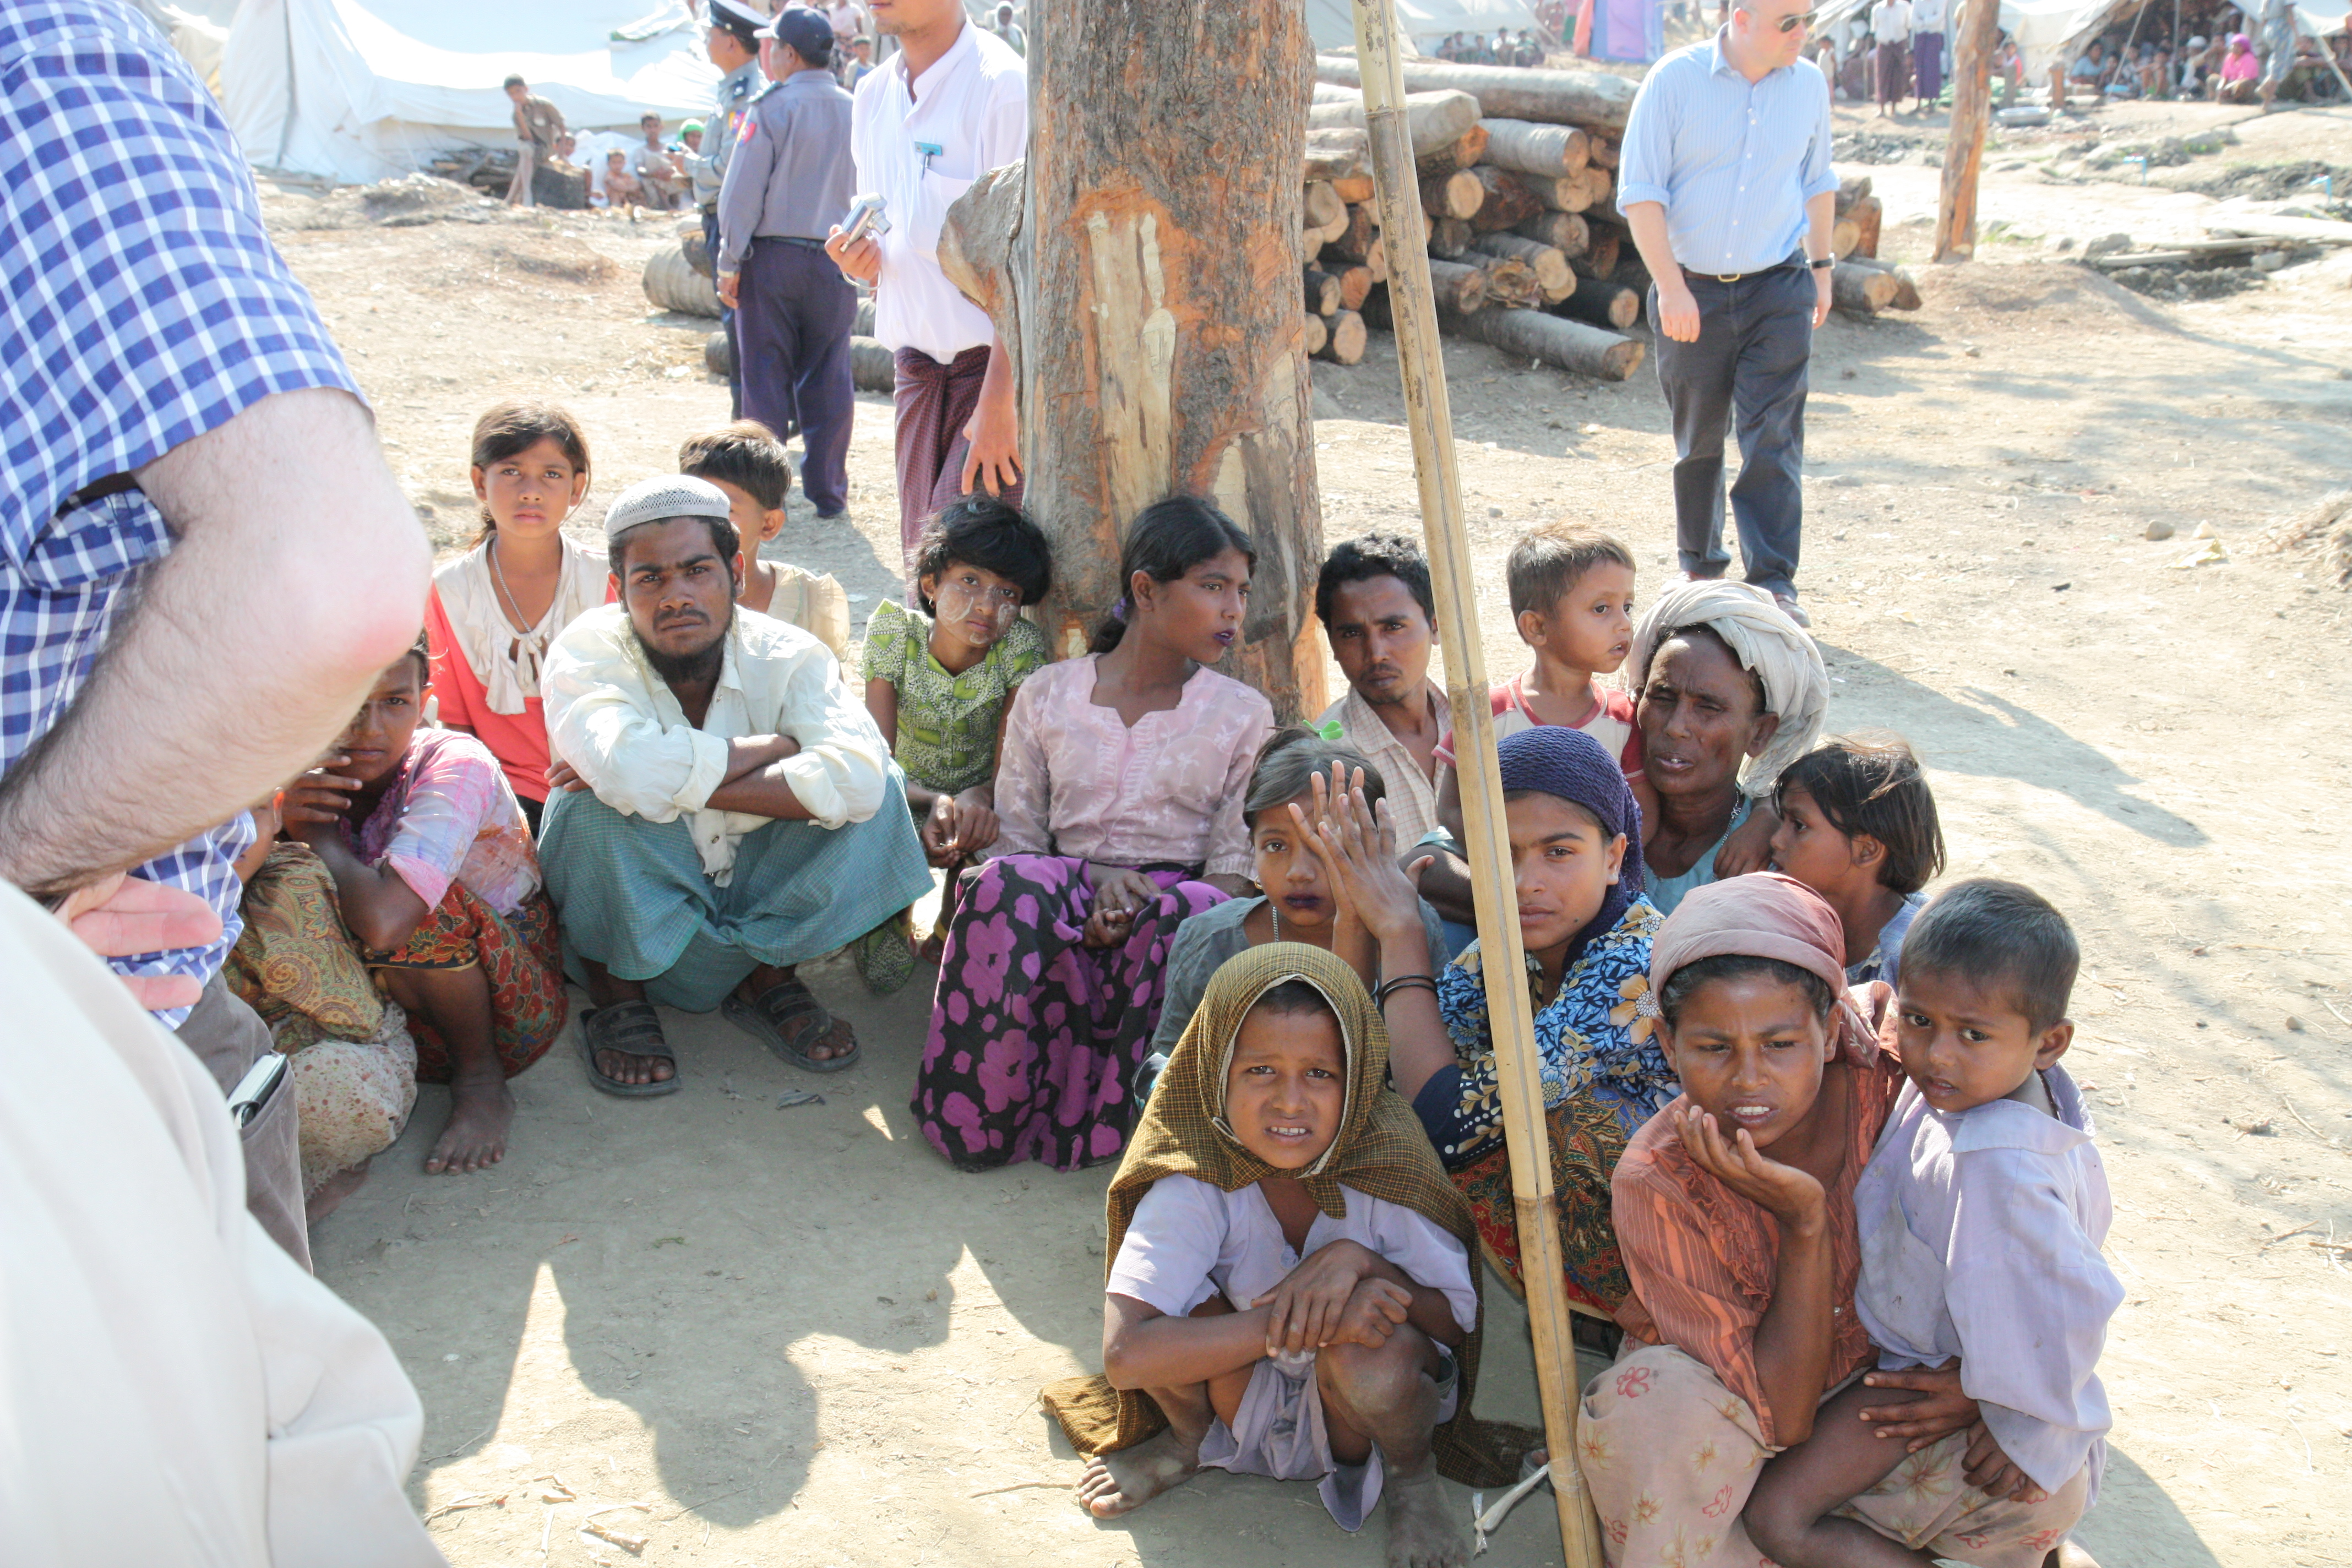 Rohingya-Flüchtlinge in der myanmarischen Provinz Rakhine. (Foreign and Commonwealth Office via Wikimedia Commons unter OGL-Lizenz)